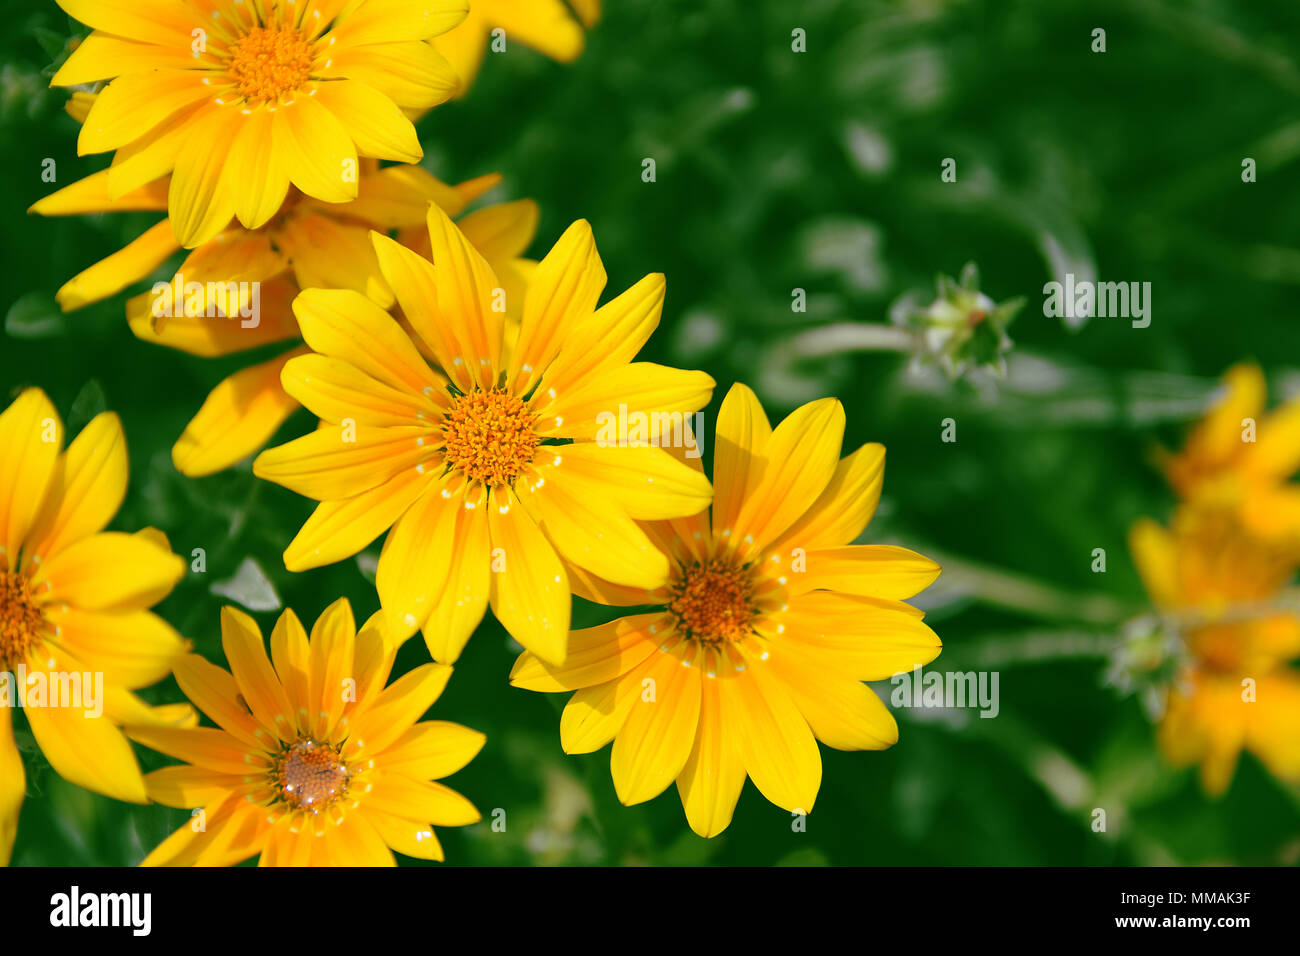 Yellow Marguerites And Dysies Against A Green Natural Background Empty Copy Space For Editor Text Stock Photo Alamy